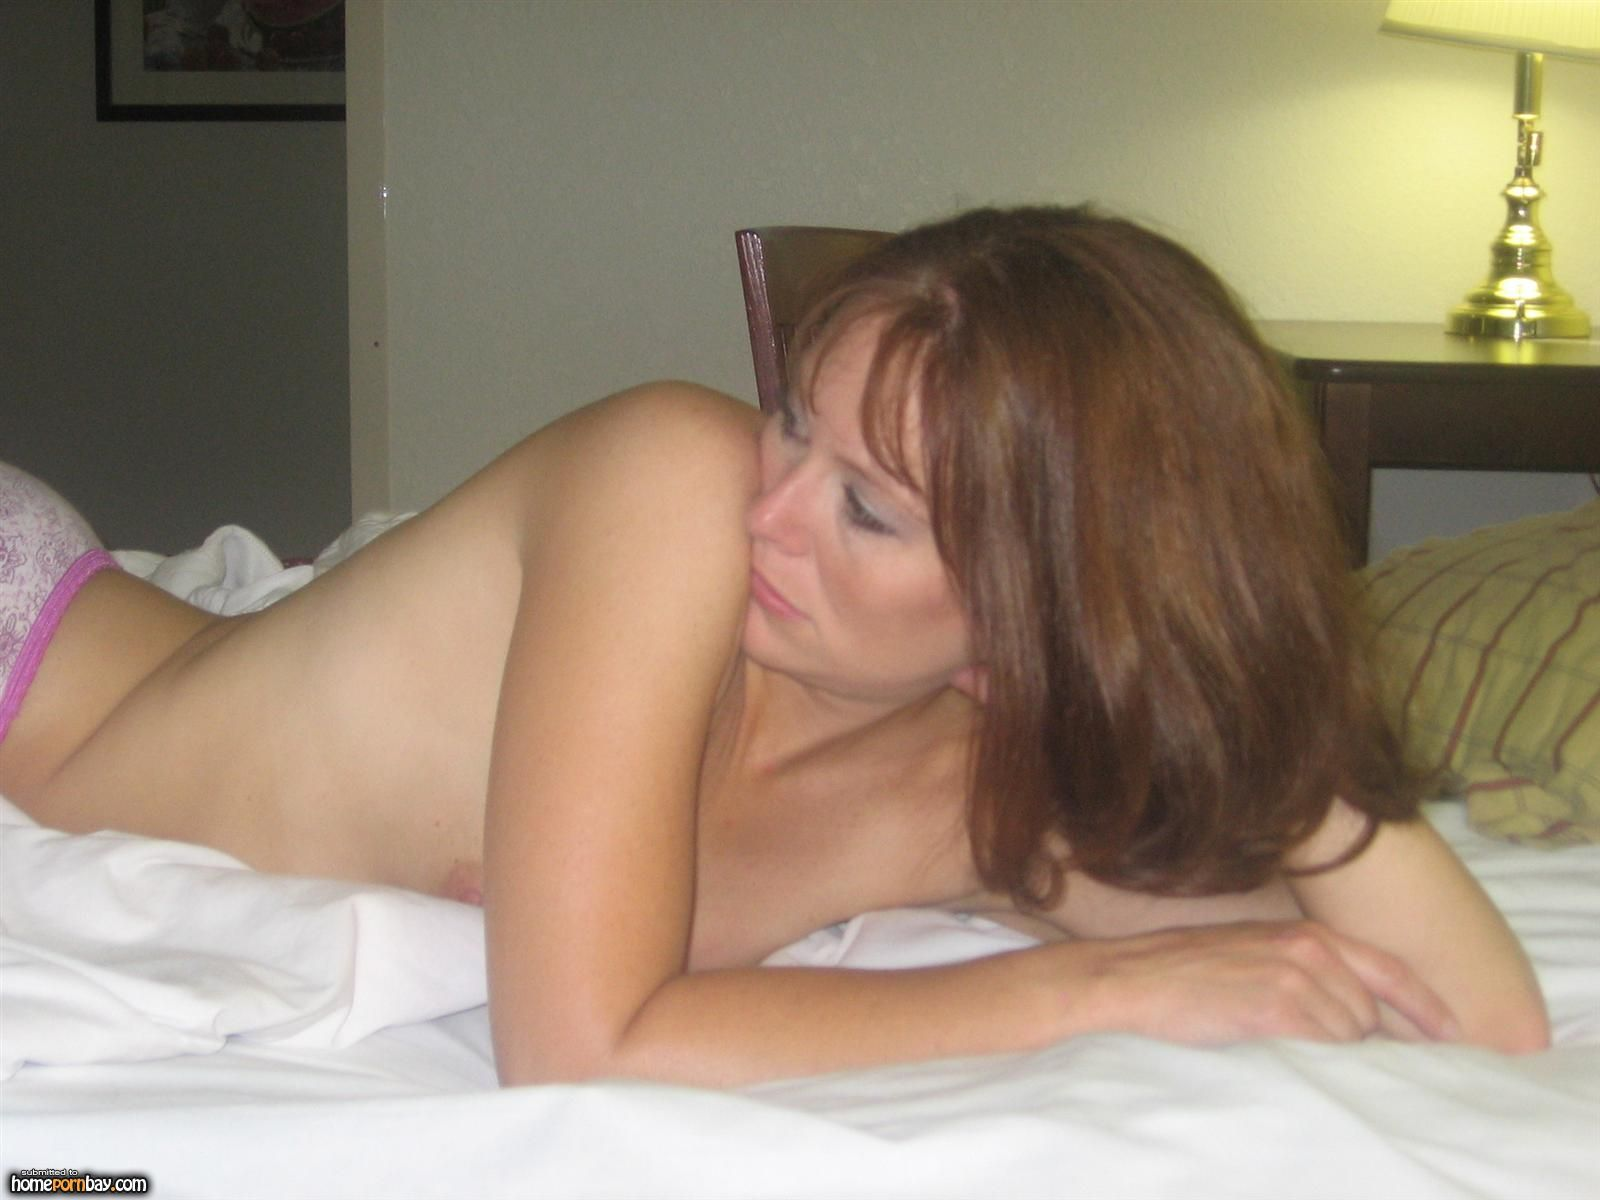 Sex pic naked woman only bot